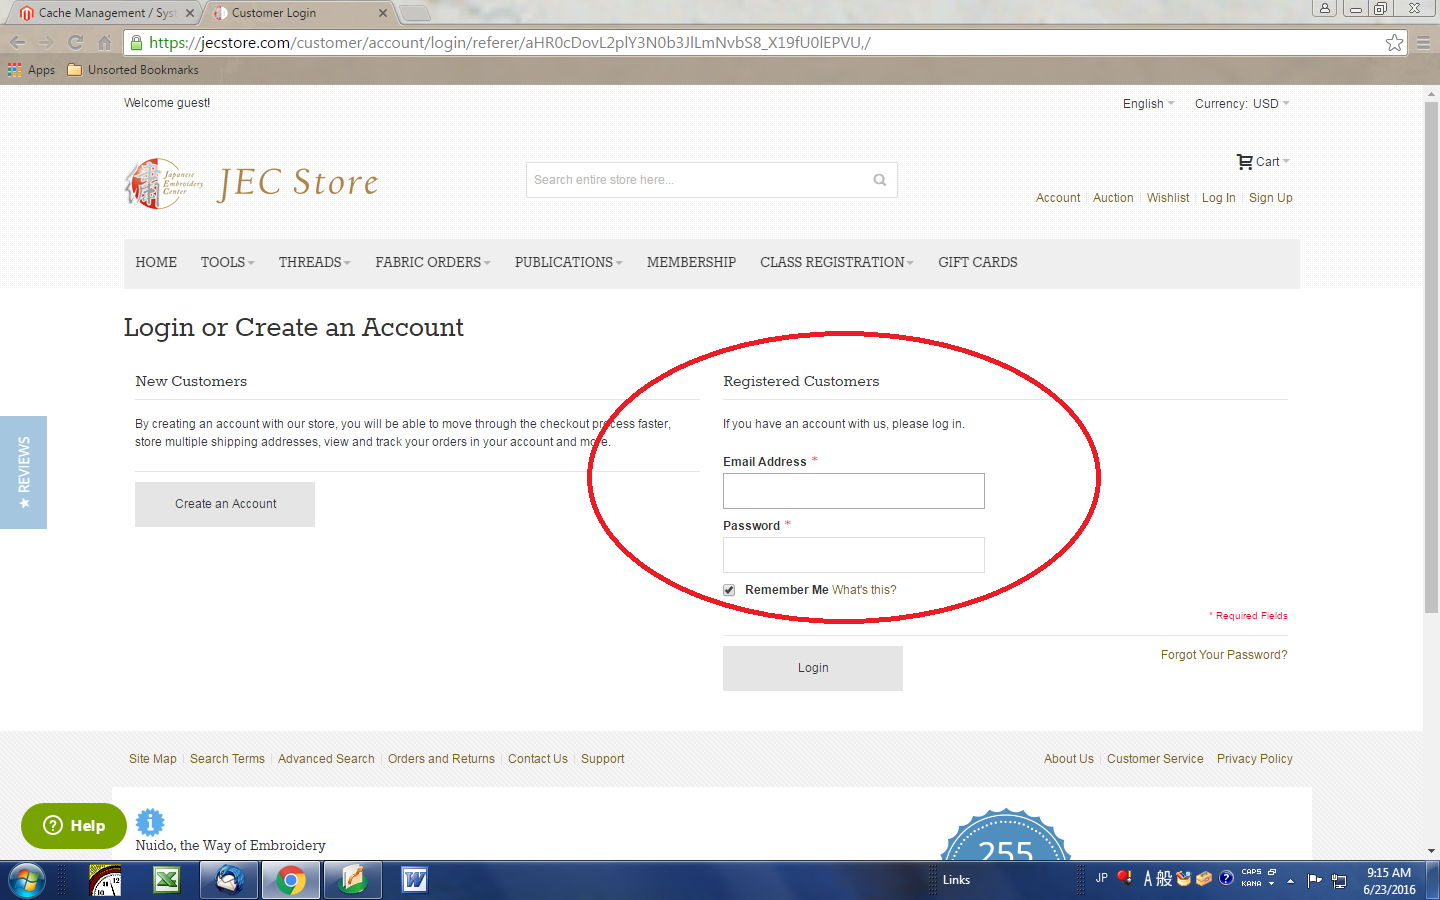 En us/customer/account/create - Enter Your E Mail Address And Password